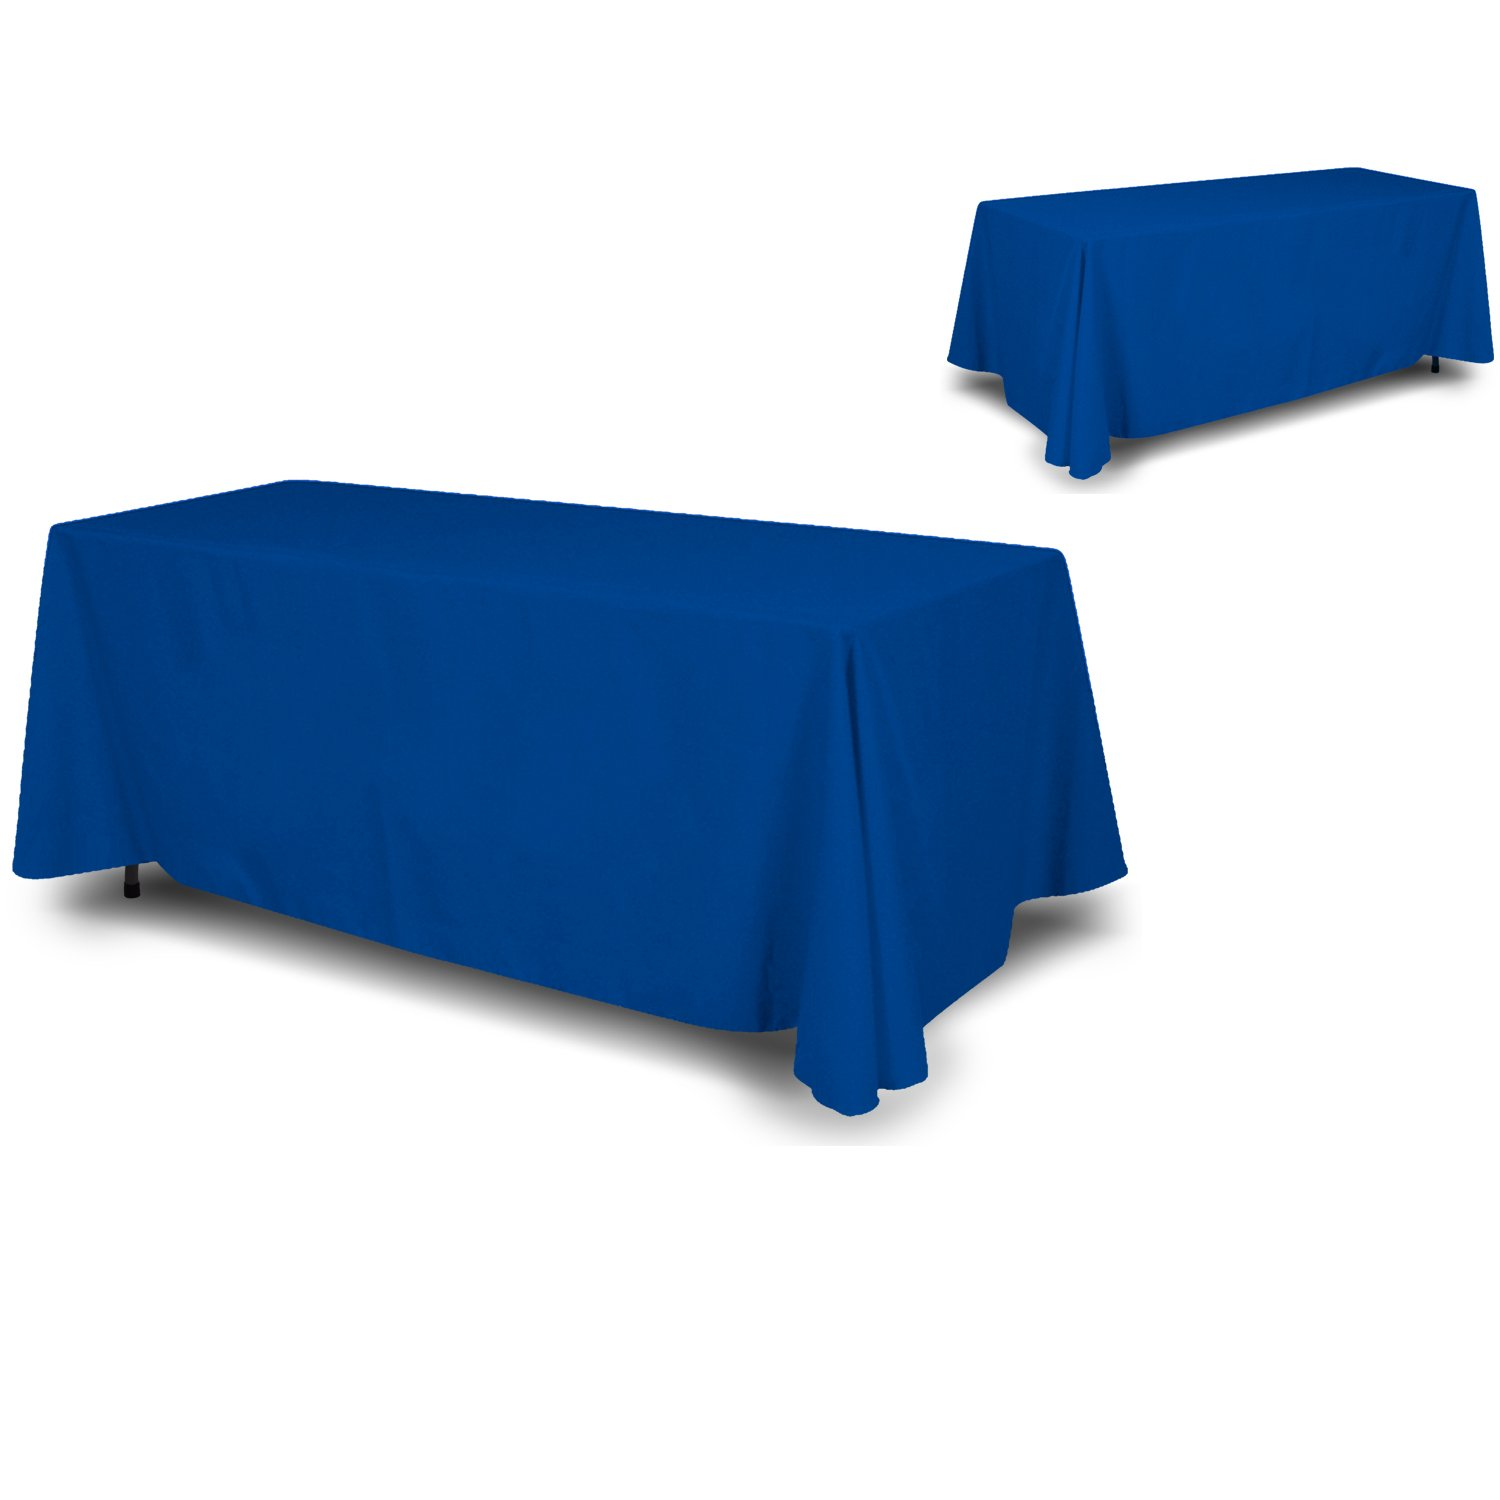 wall26 - 4 Sided Full Back Blue Tablecloth / Table Cover / Throw | Cloth Size 90'' x 132'' suited for 6ft table